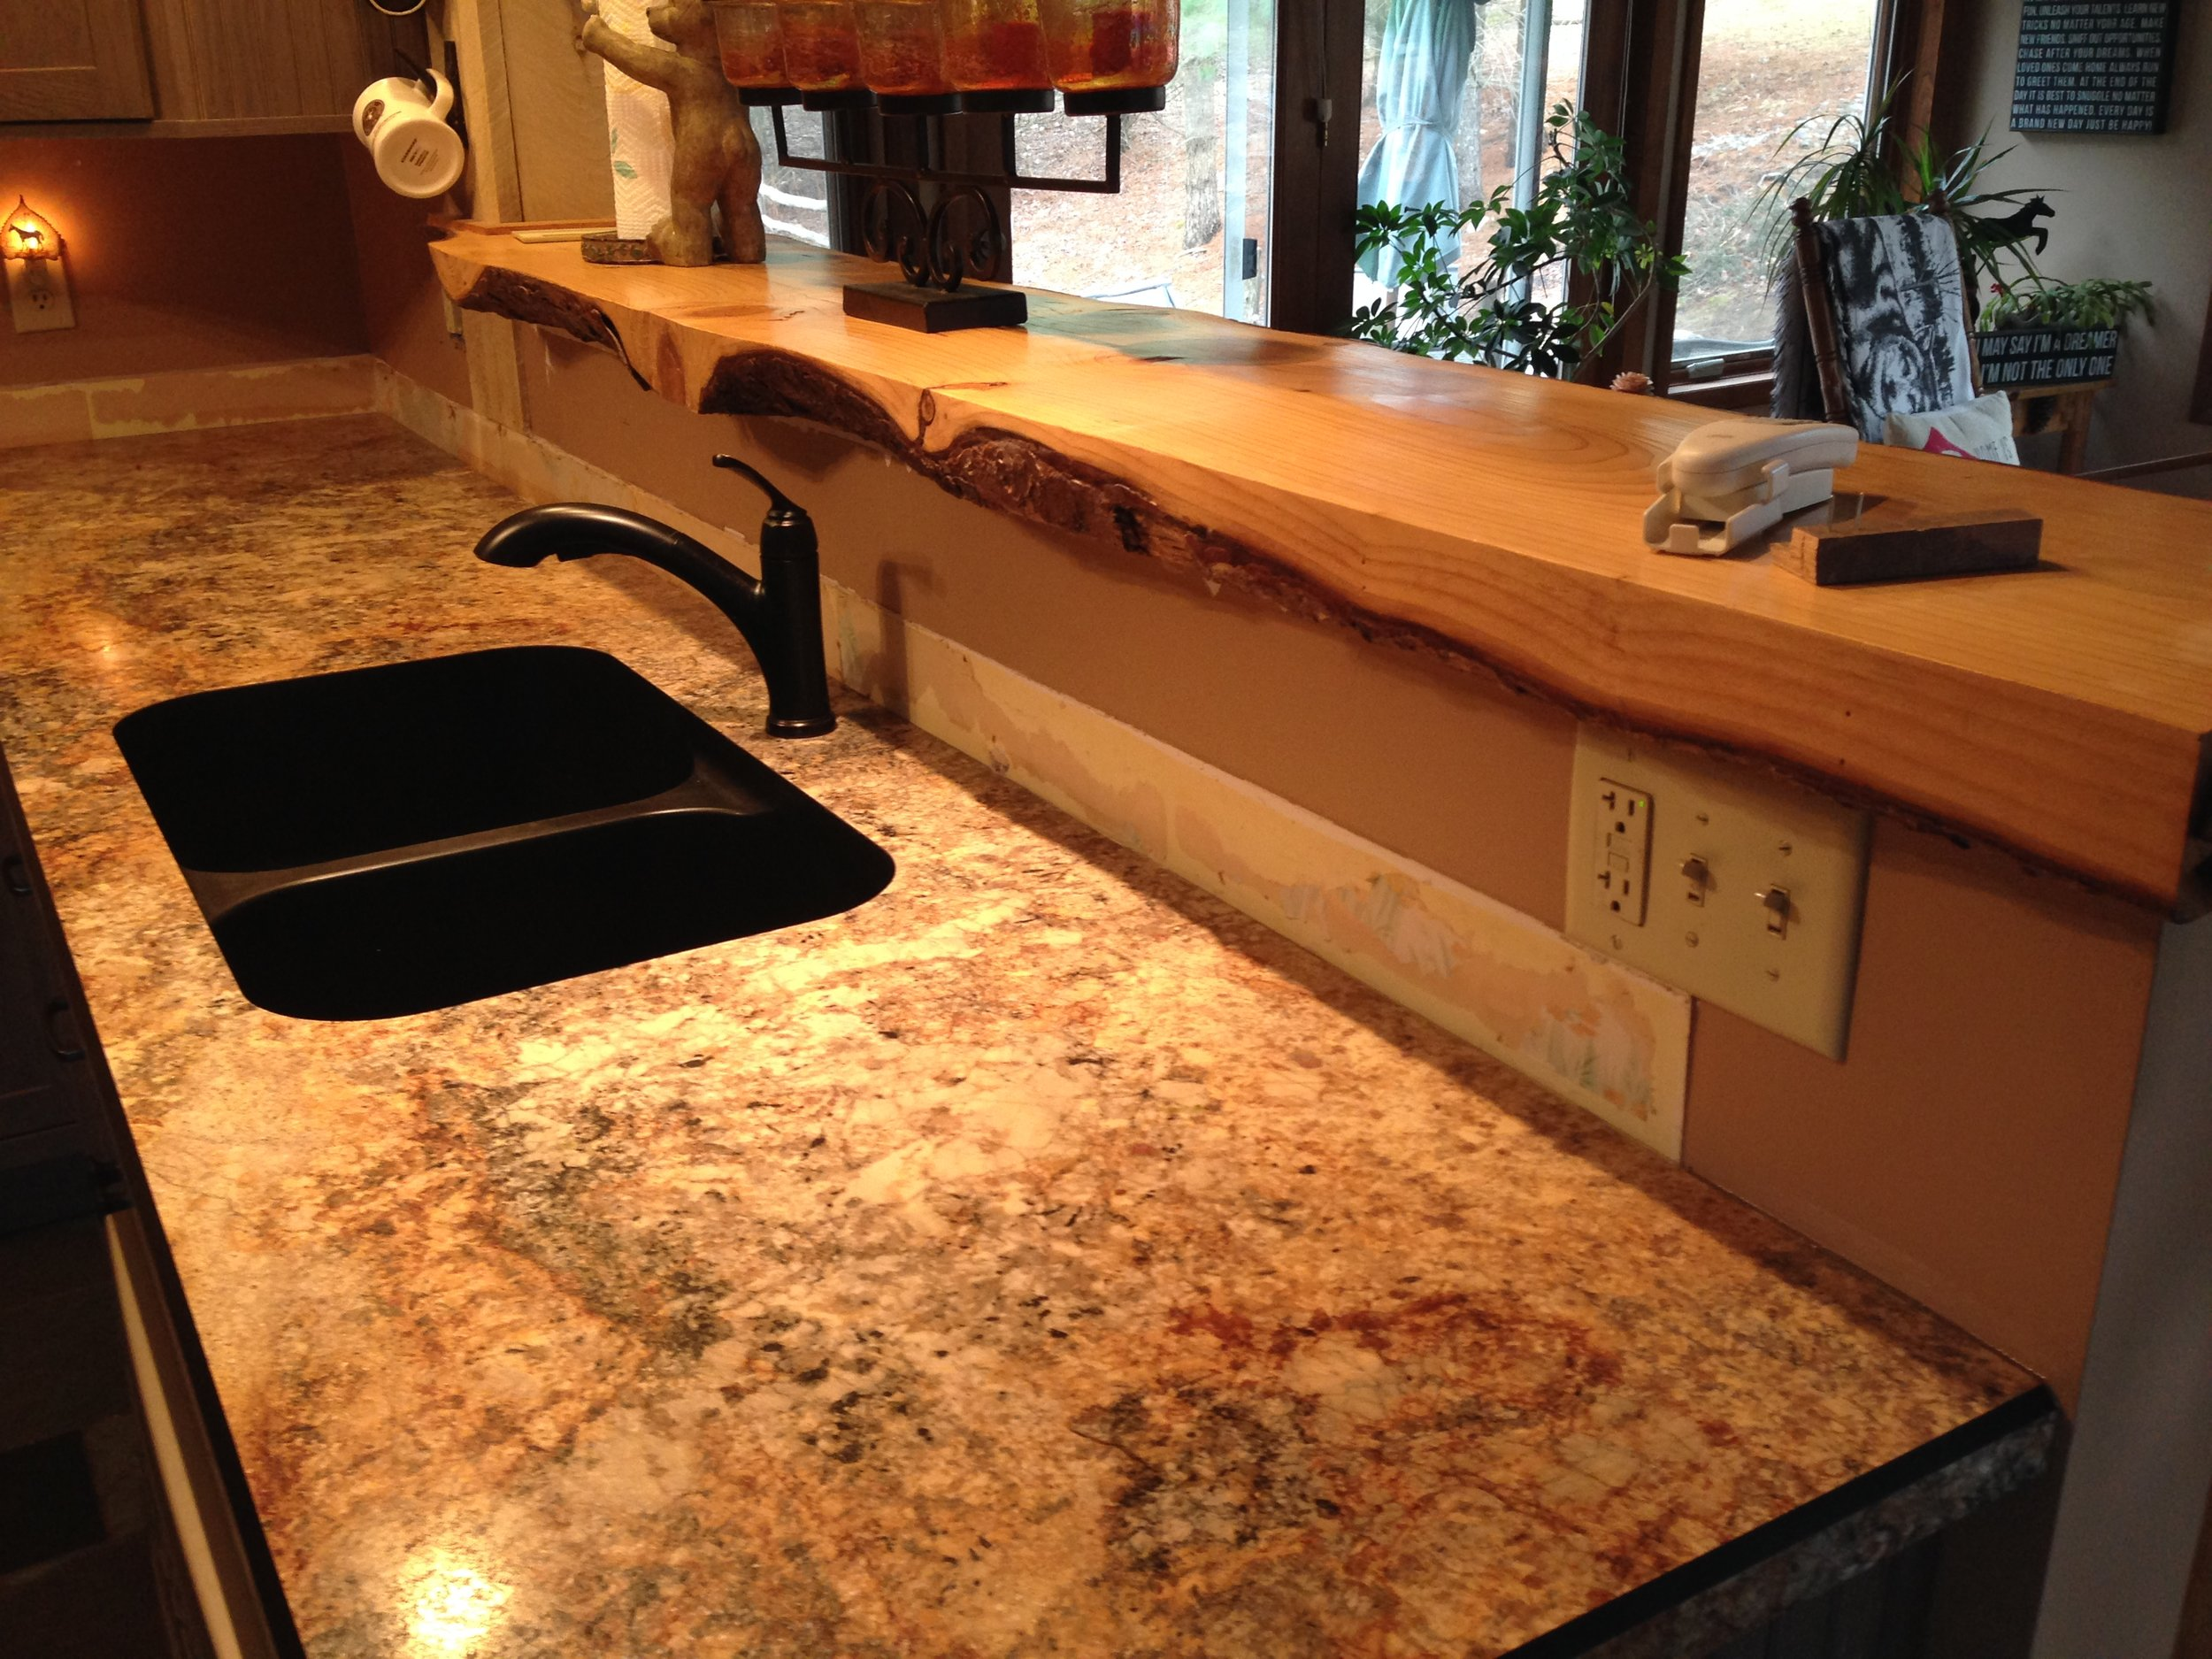 Custom backsplash to complement this rustic home in East Greenbush